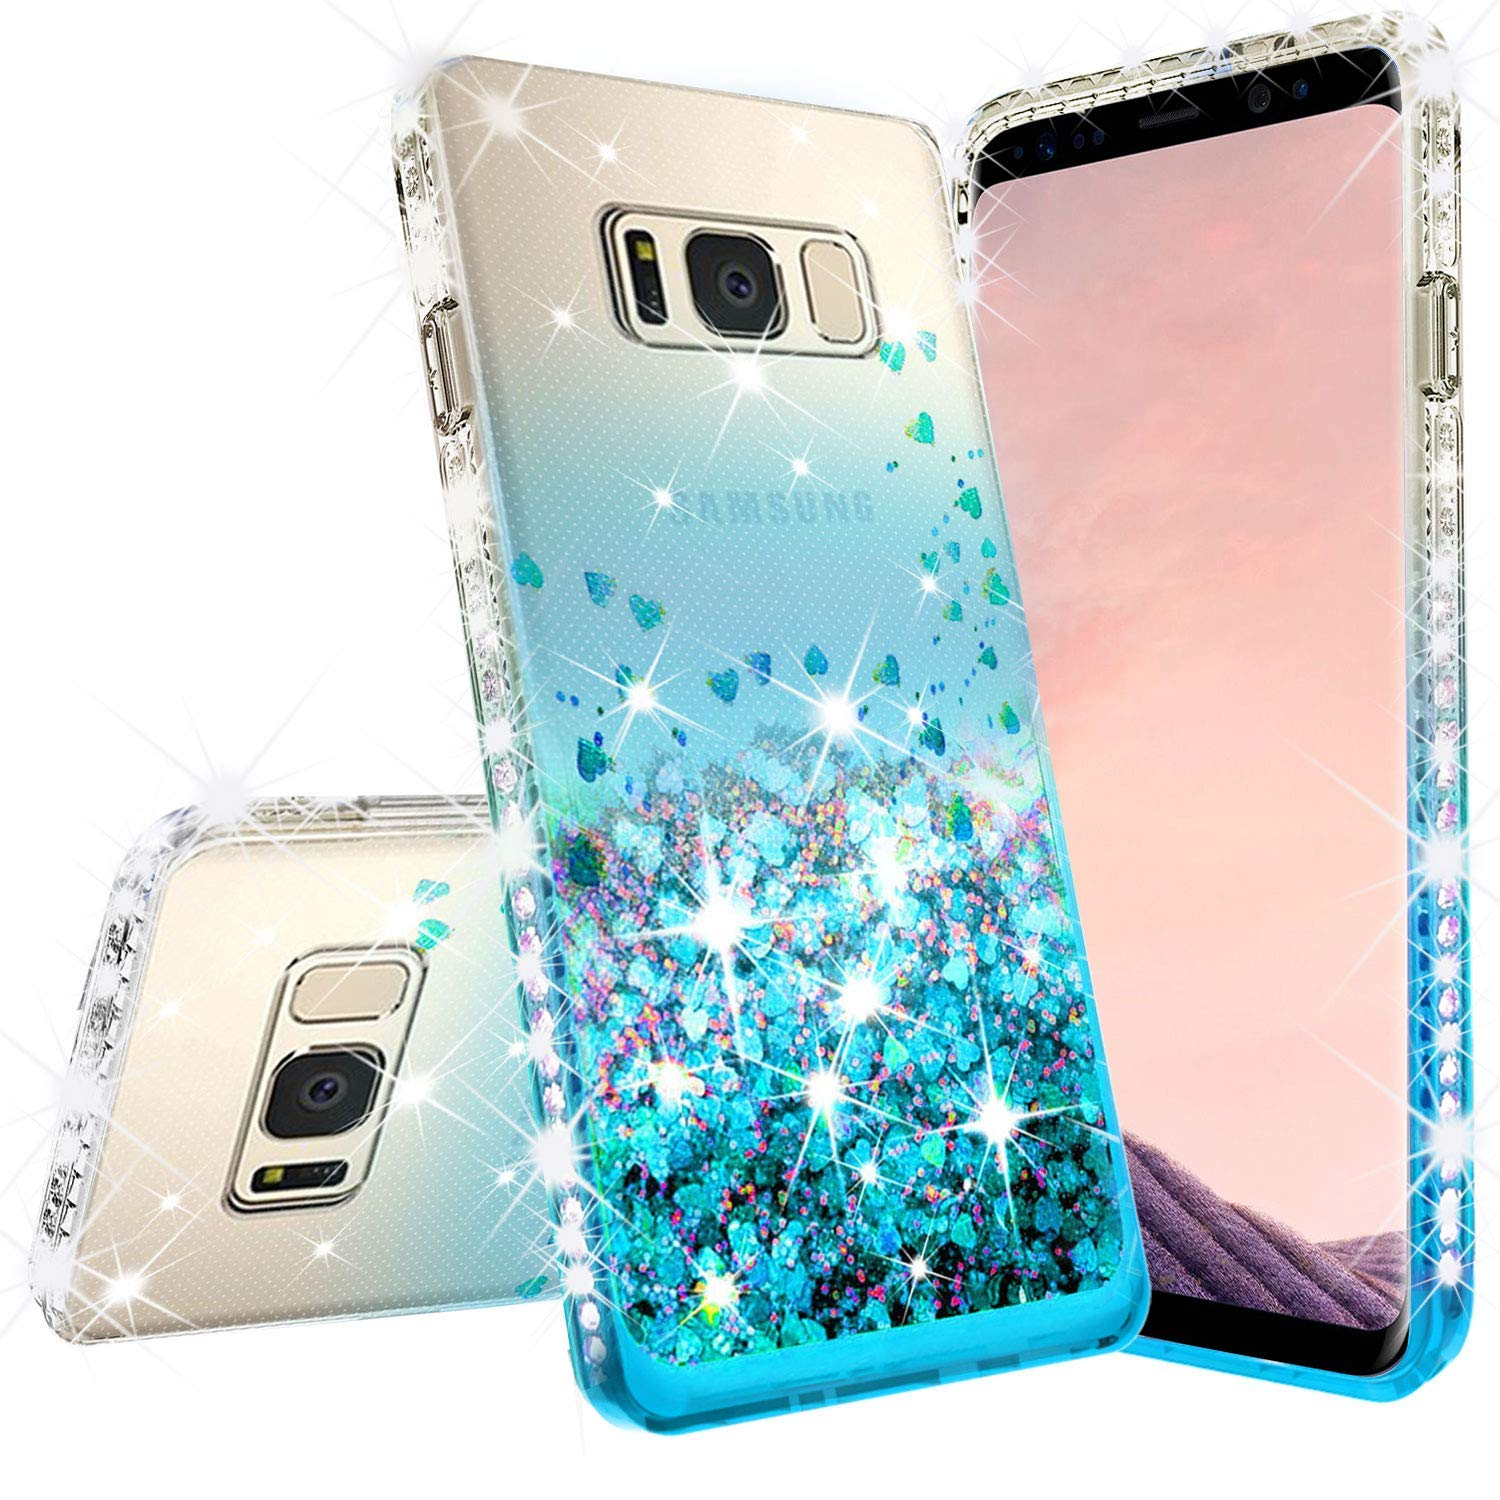 Samsung Galaxy S9 Casew/[Temper Glass Screen Protector] Liquid Glitter Phone Case Waterfall Floating Quicksand Bling Sparkle Cute Protective Girls Women Cover for Galaxy S9 - Teal/Clear